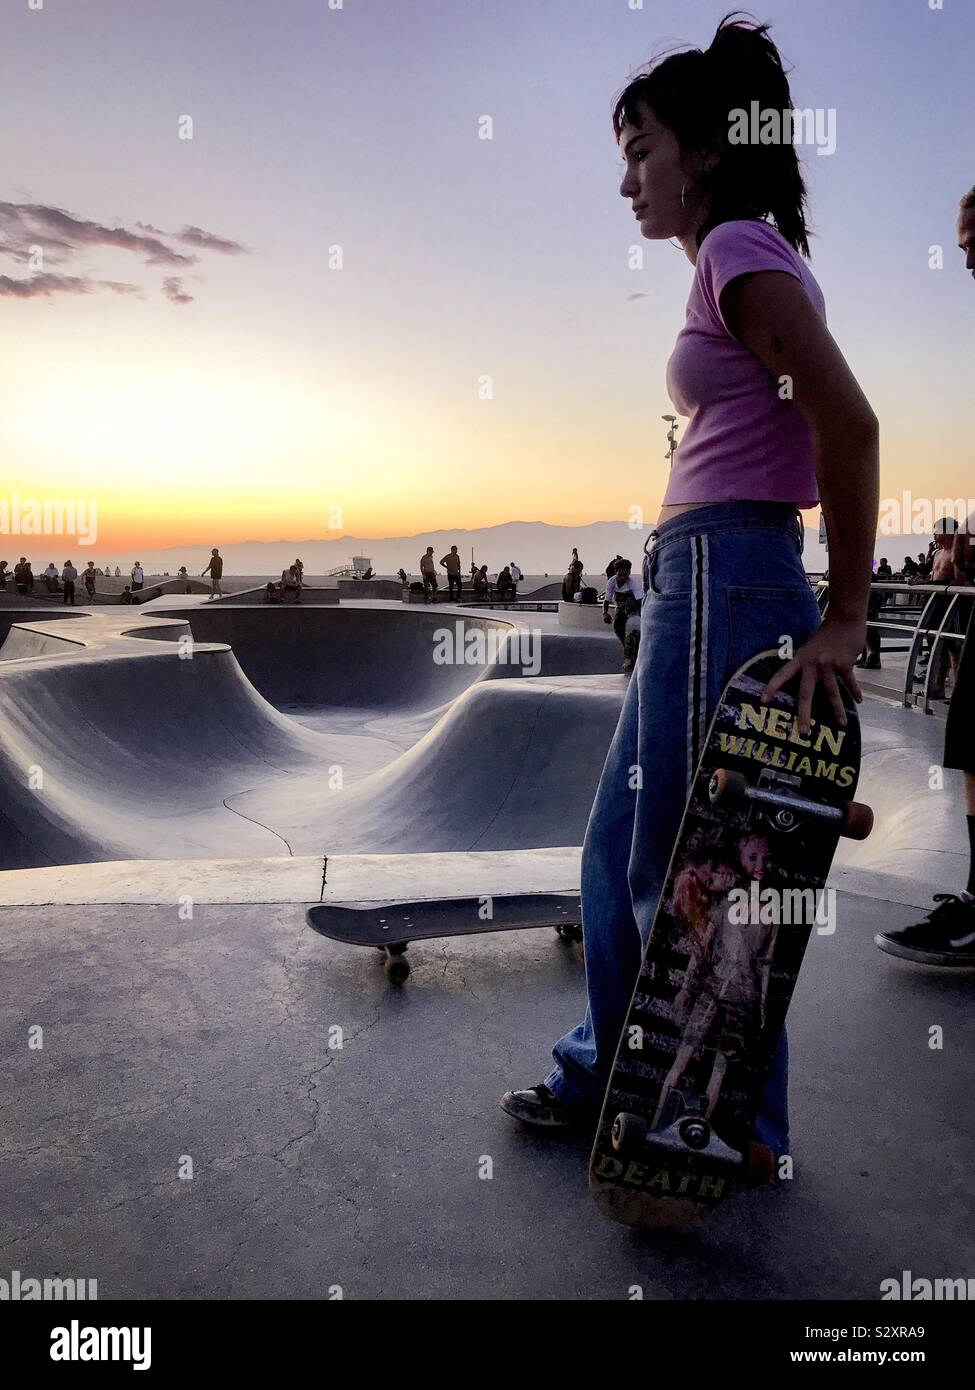 Skate girl contemplating the curves during golden hour in Venice CA. Stock Photo